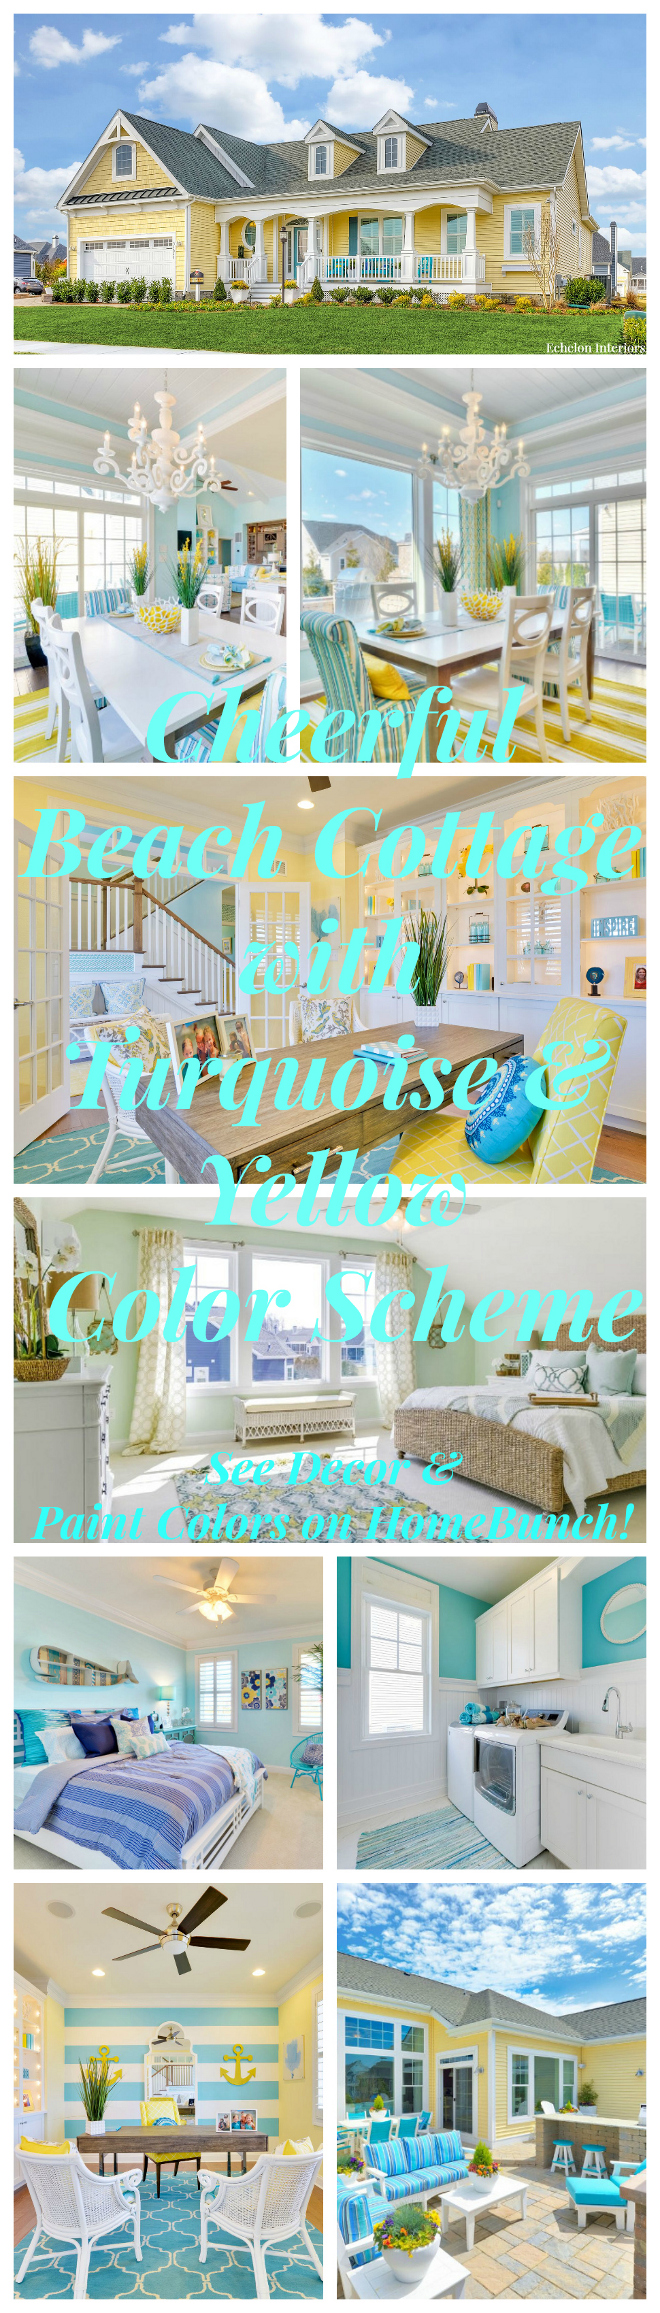 Cheerful Beach Cottage With Turquoise Color Scheme Ideas